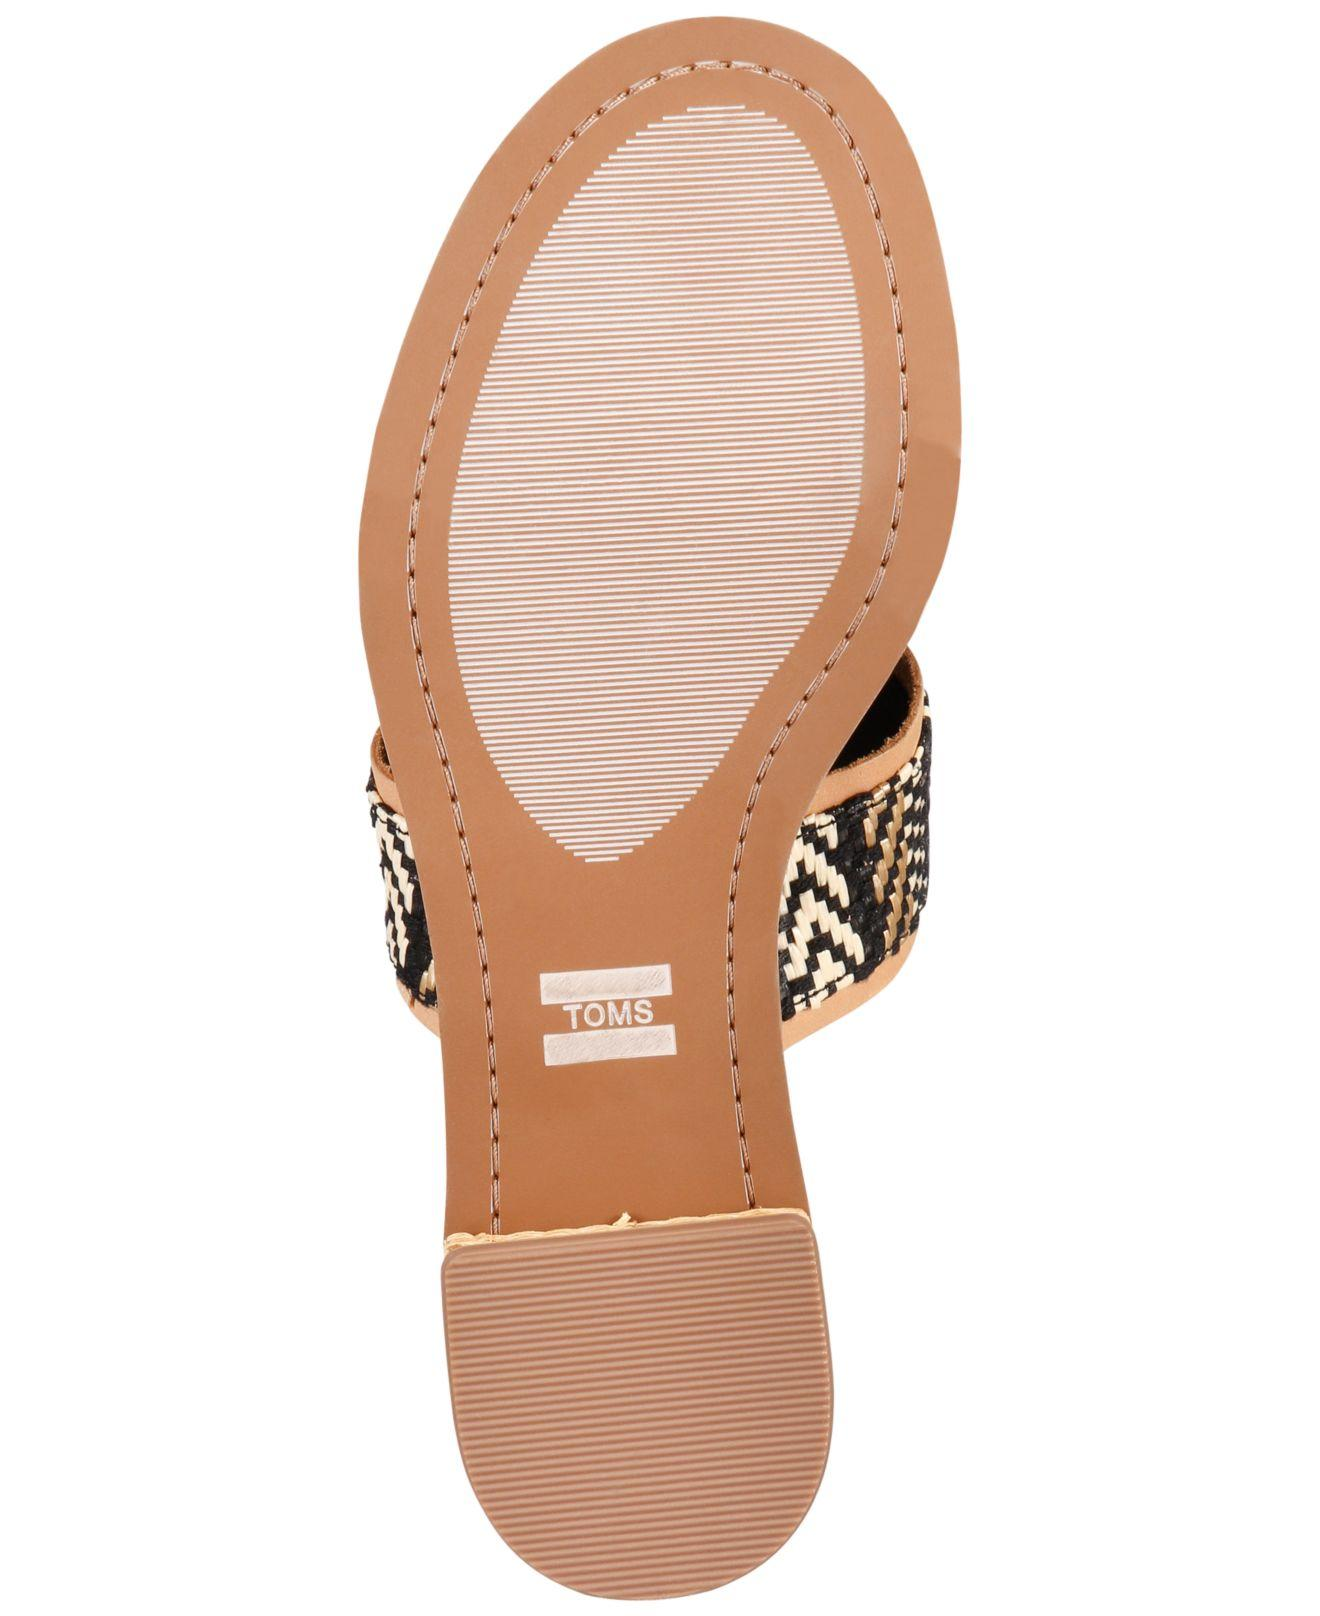 b8ff3024fed TOMS - Black Mariposa Slip-on City Sandals - Lyst. View fullscreen